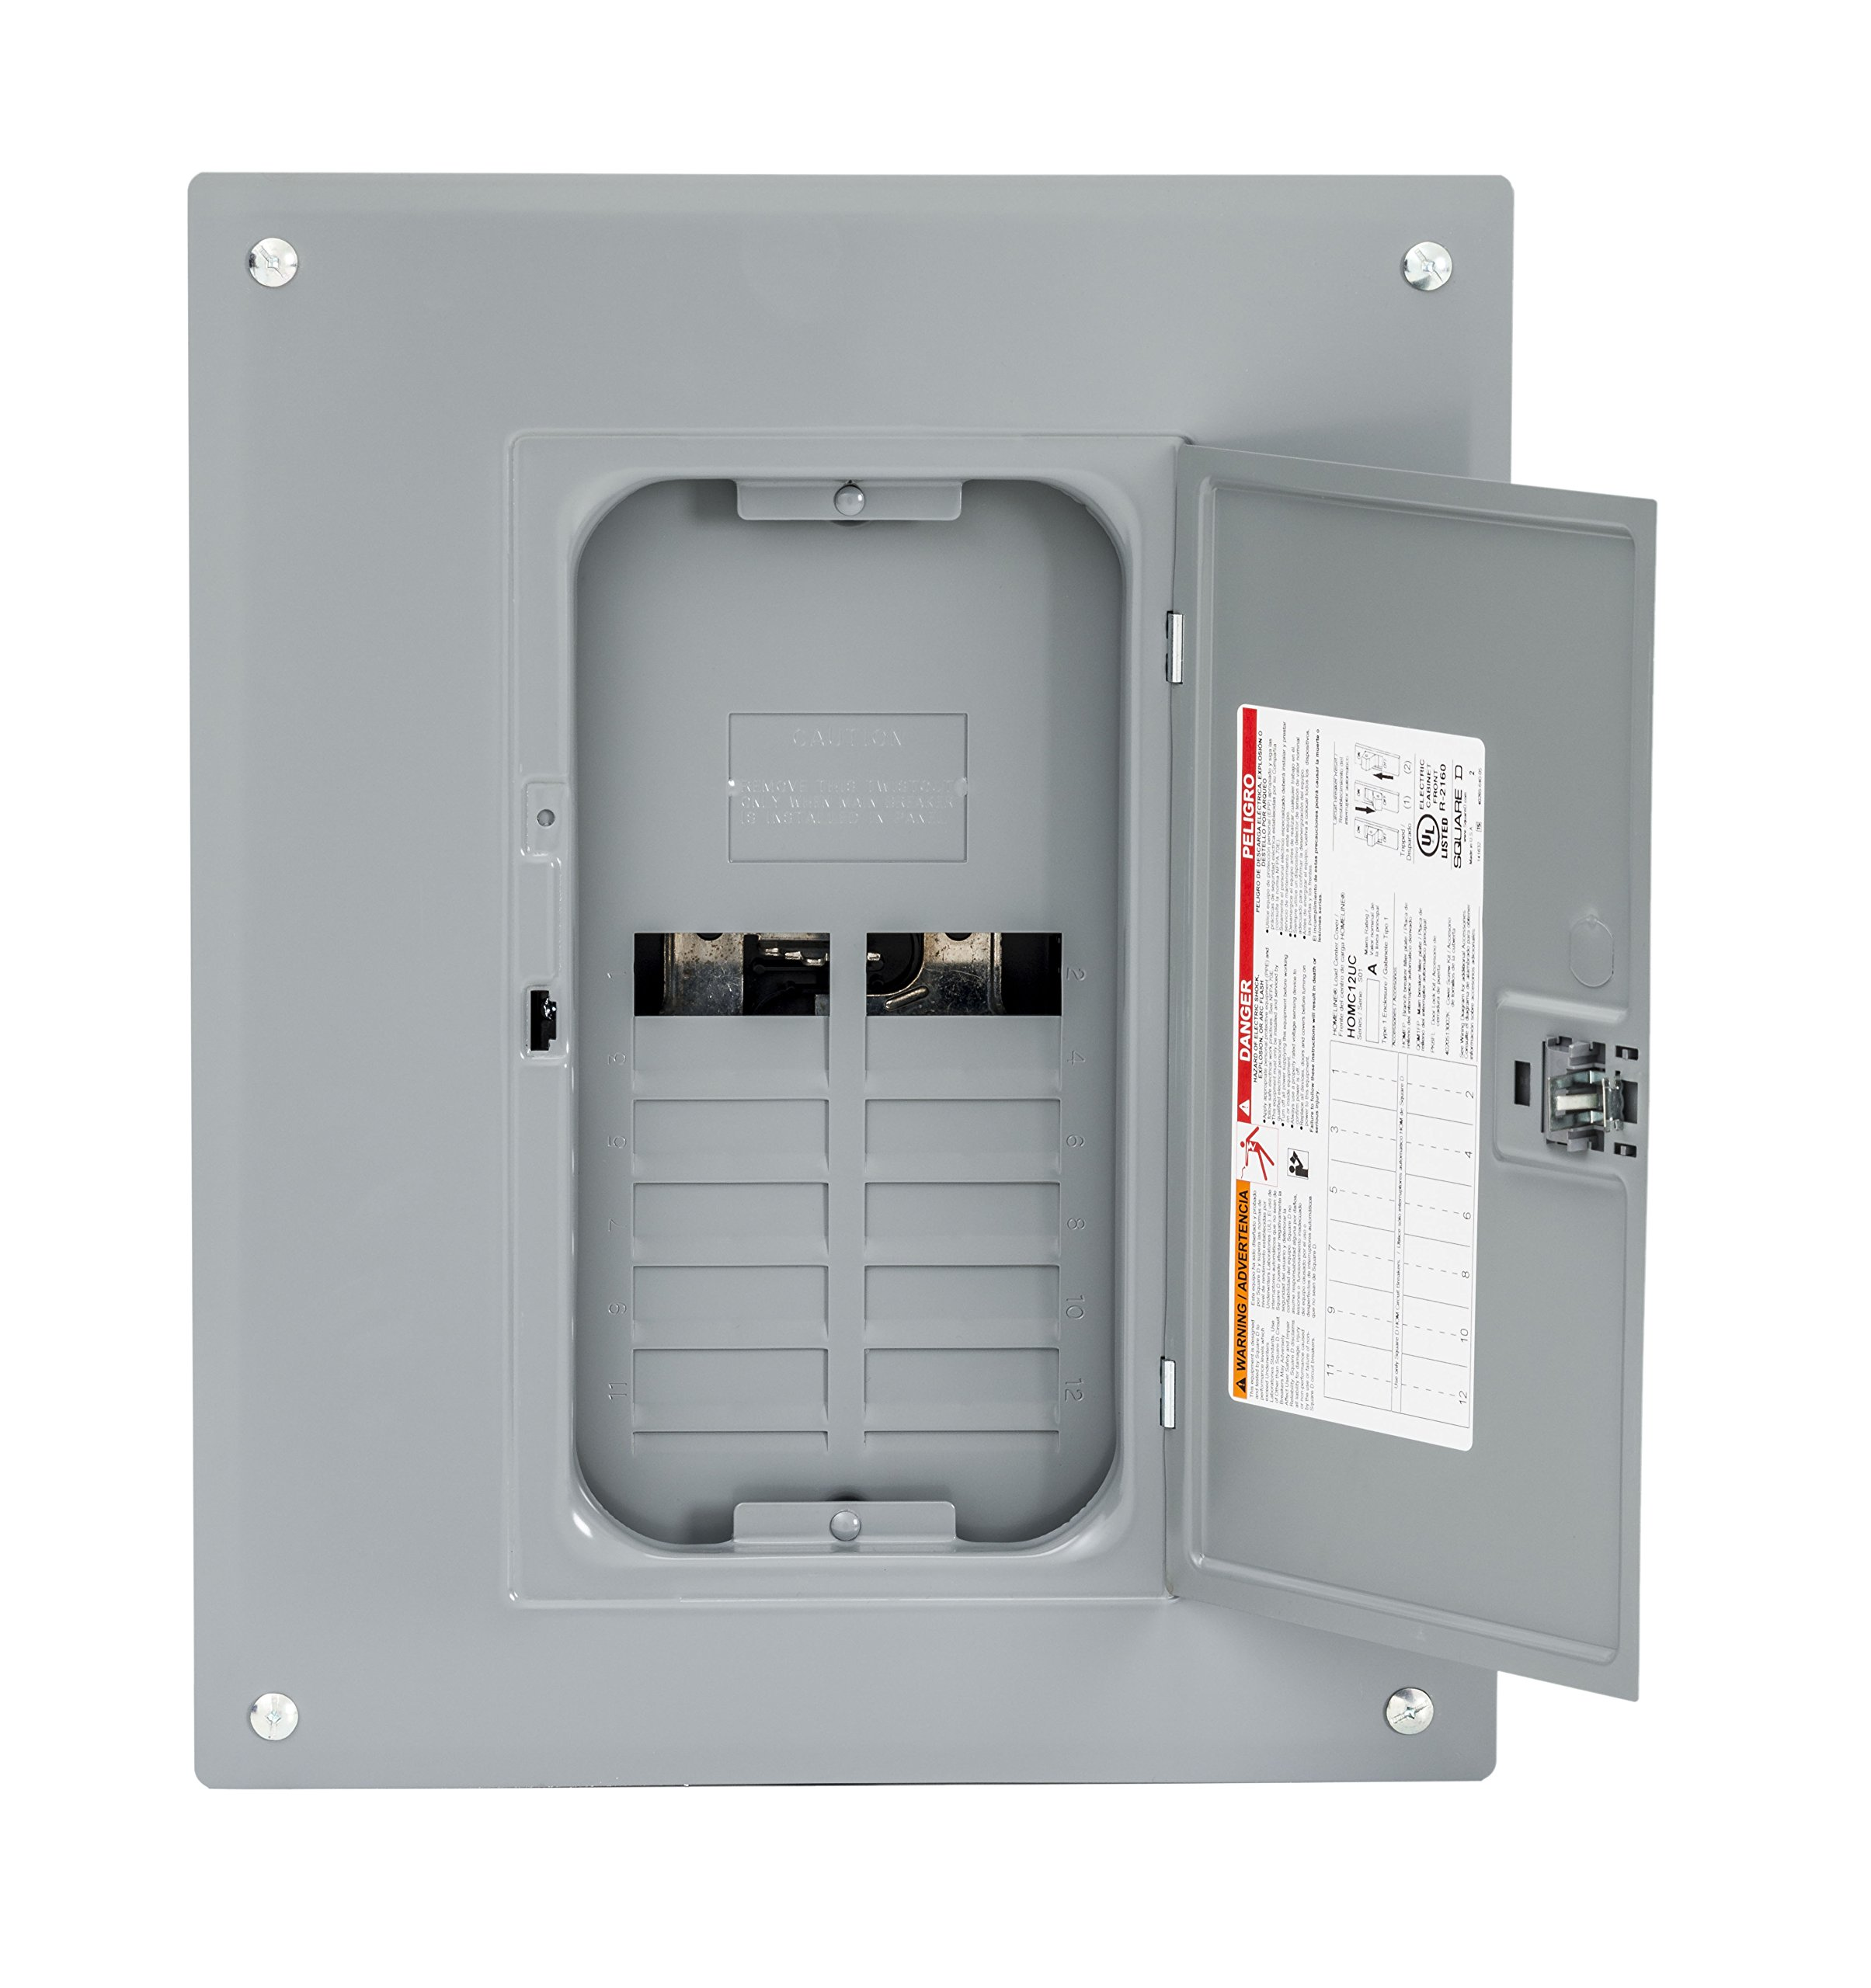 Square D by Schneider Electric HOM1224L125PC Homeline 125 Amp 12-Space 24-Circuit Indoor Main Lugs Load Center with Cover (Plug-on Neutral Ready),